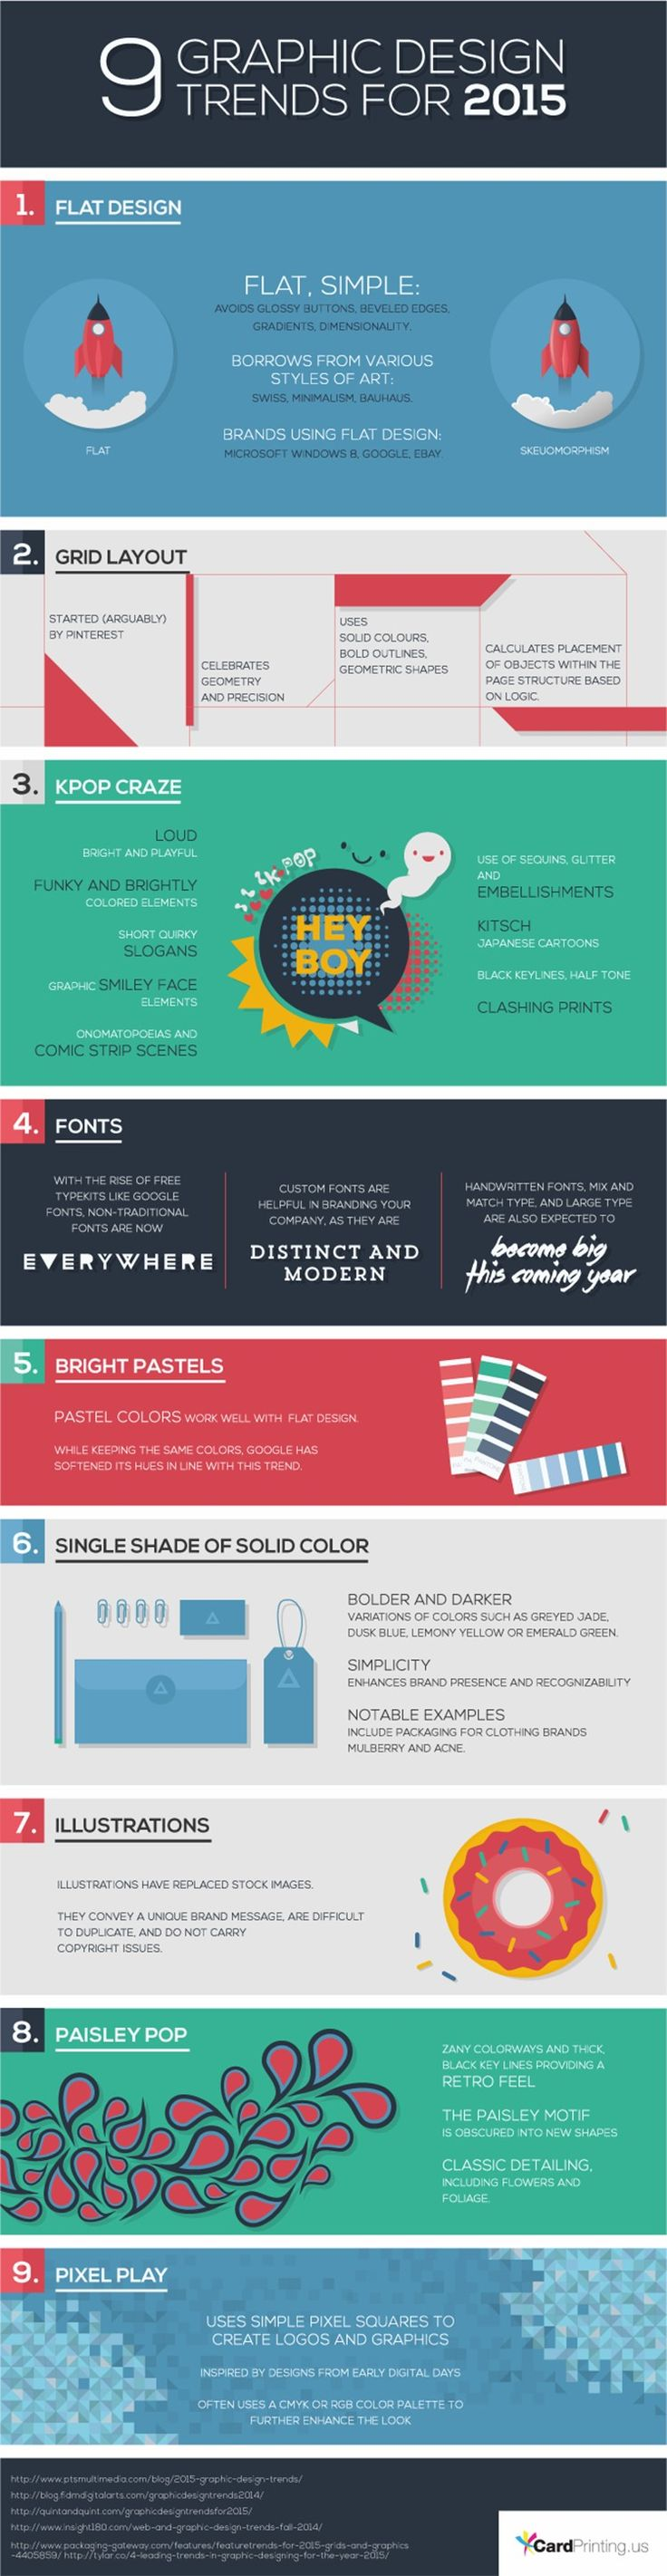 9 Graphic Design Trends 2015 - Infographic